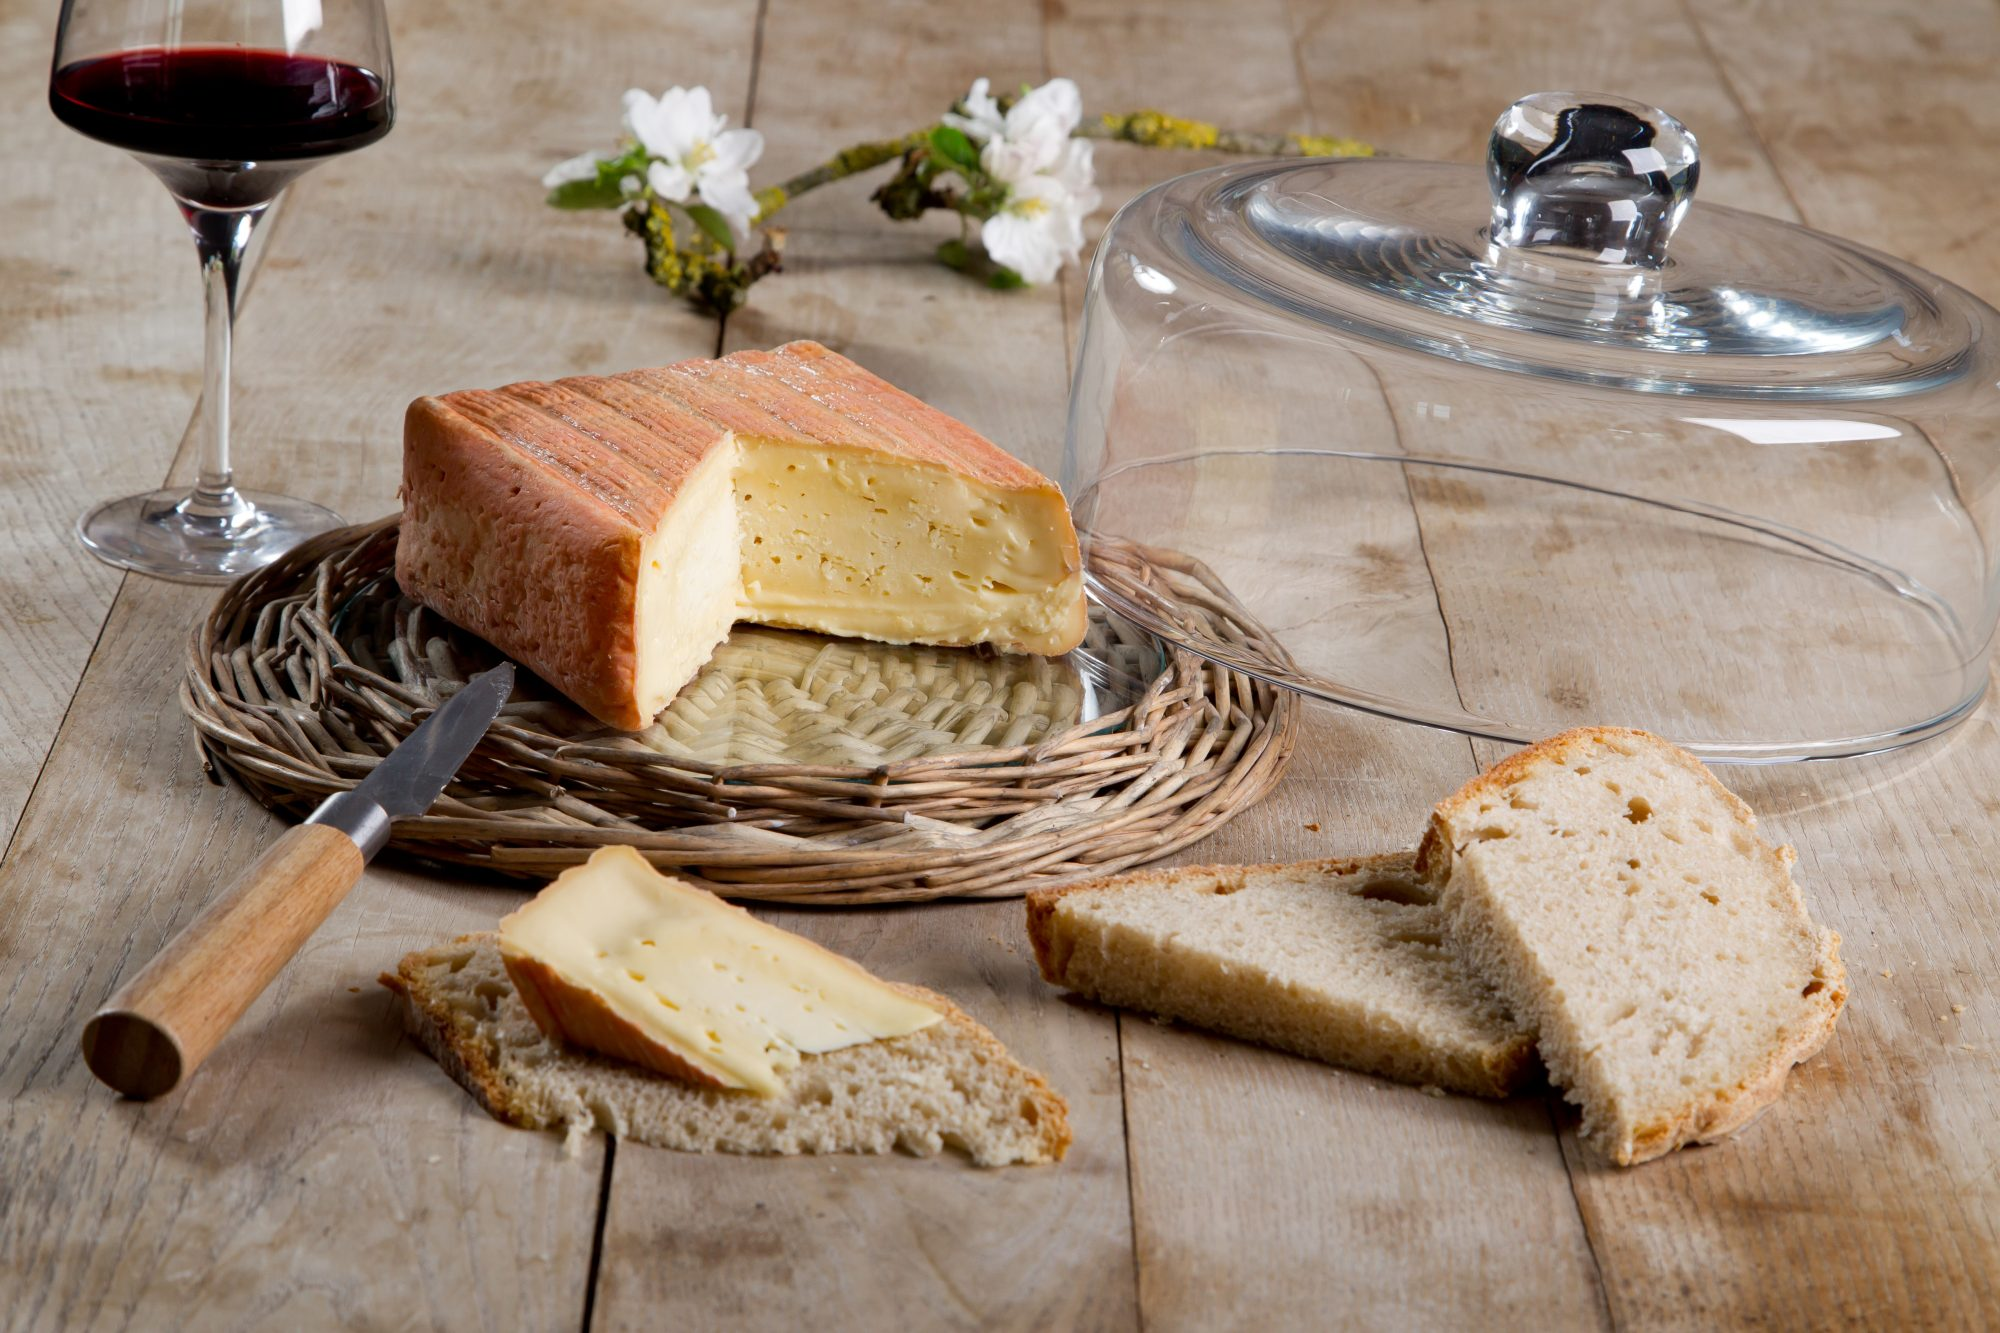 5 French Cheeses That Should Be on Your Next Cheese Board